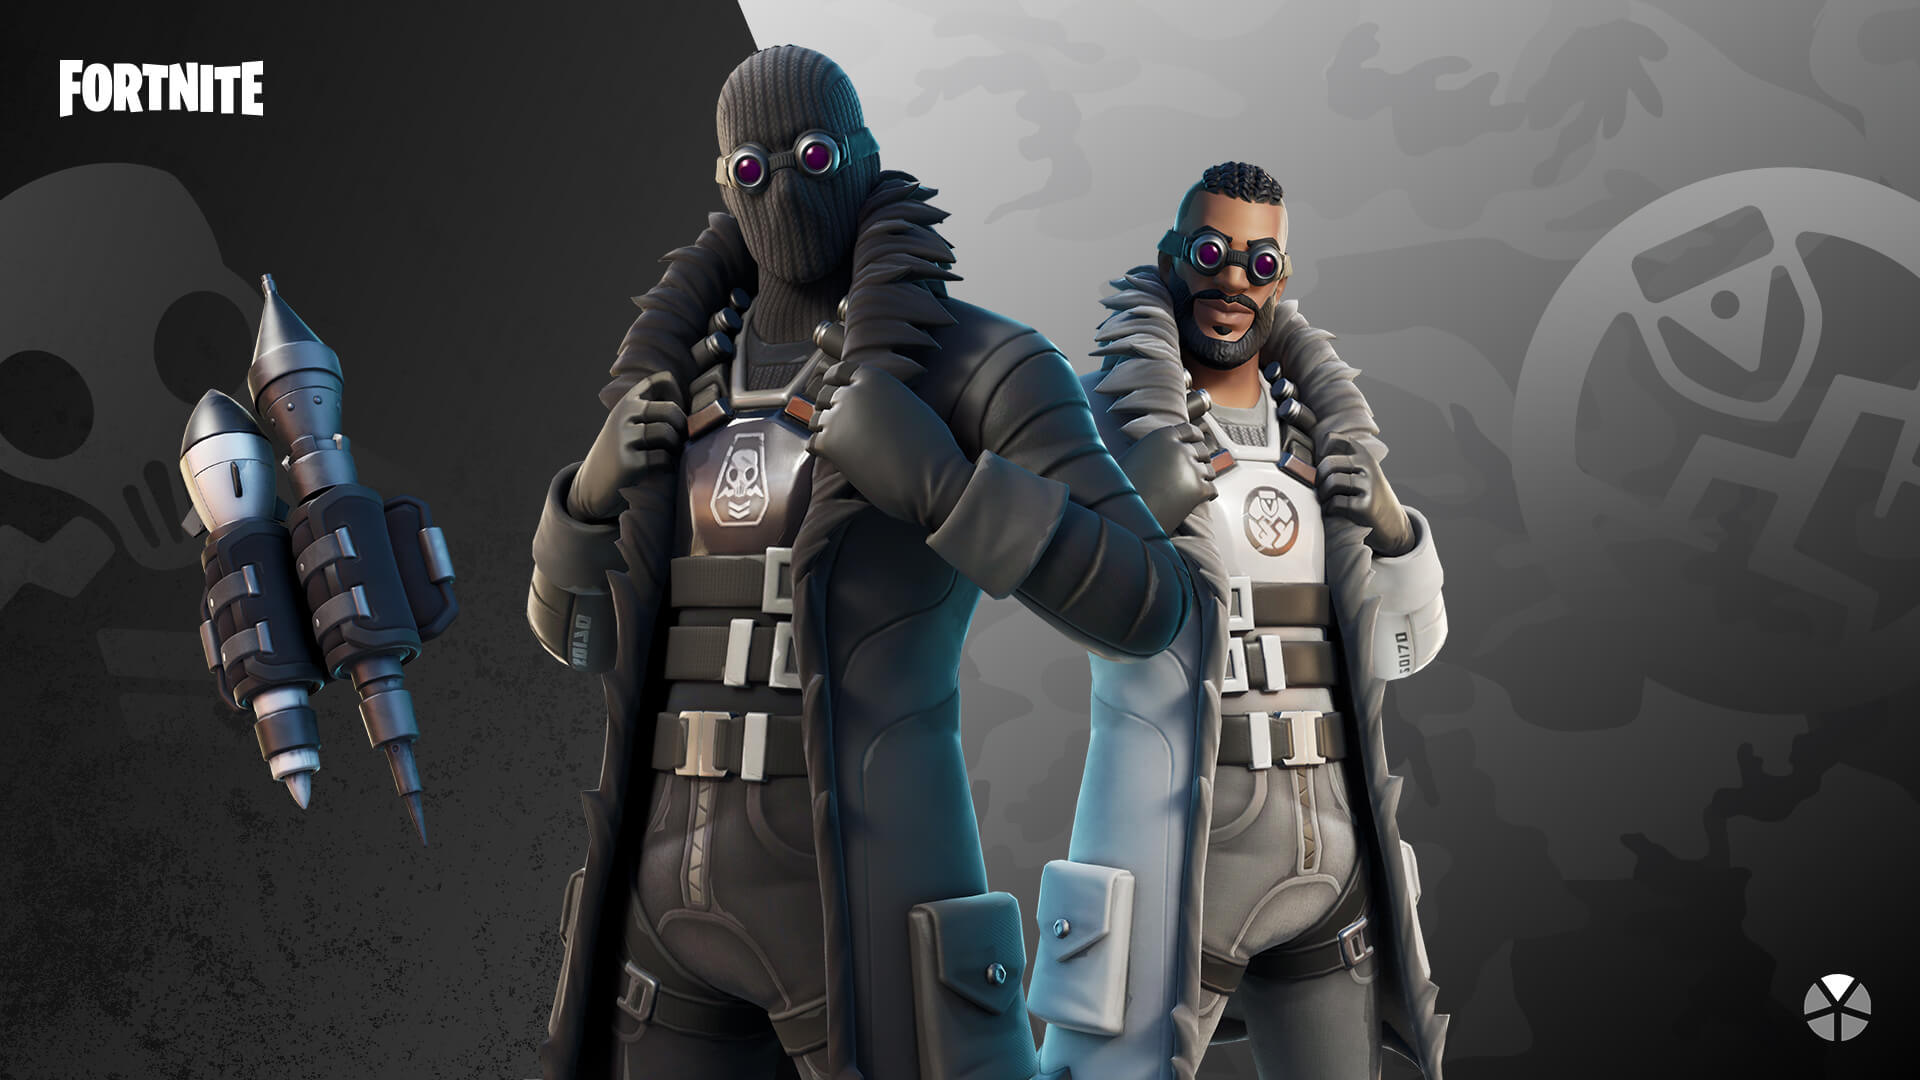 Fortnite Renegade Shadow Outfit and Blast Radius Back Bling